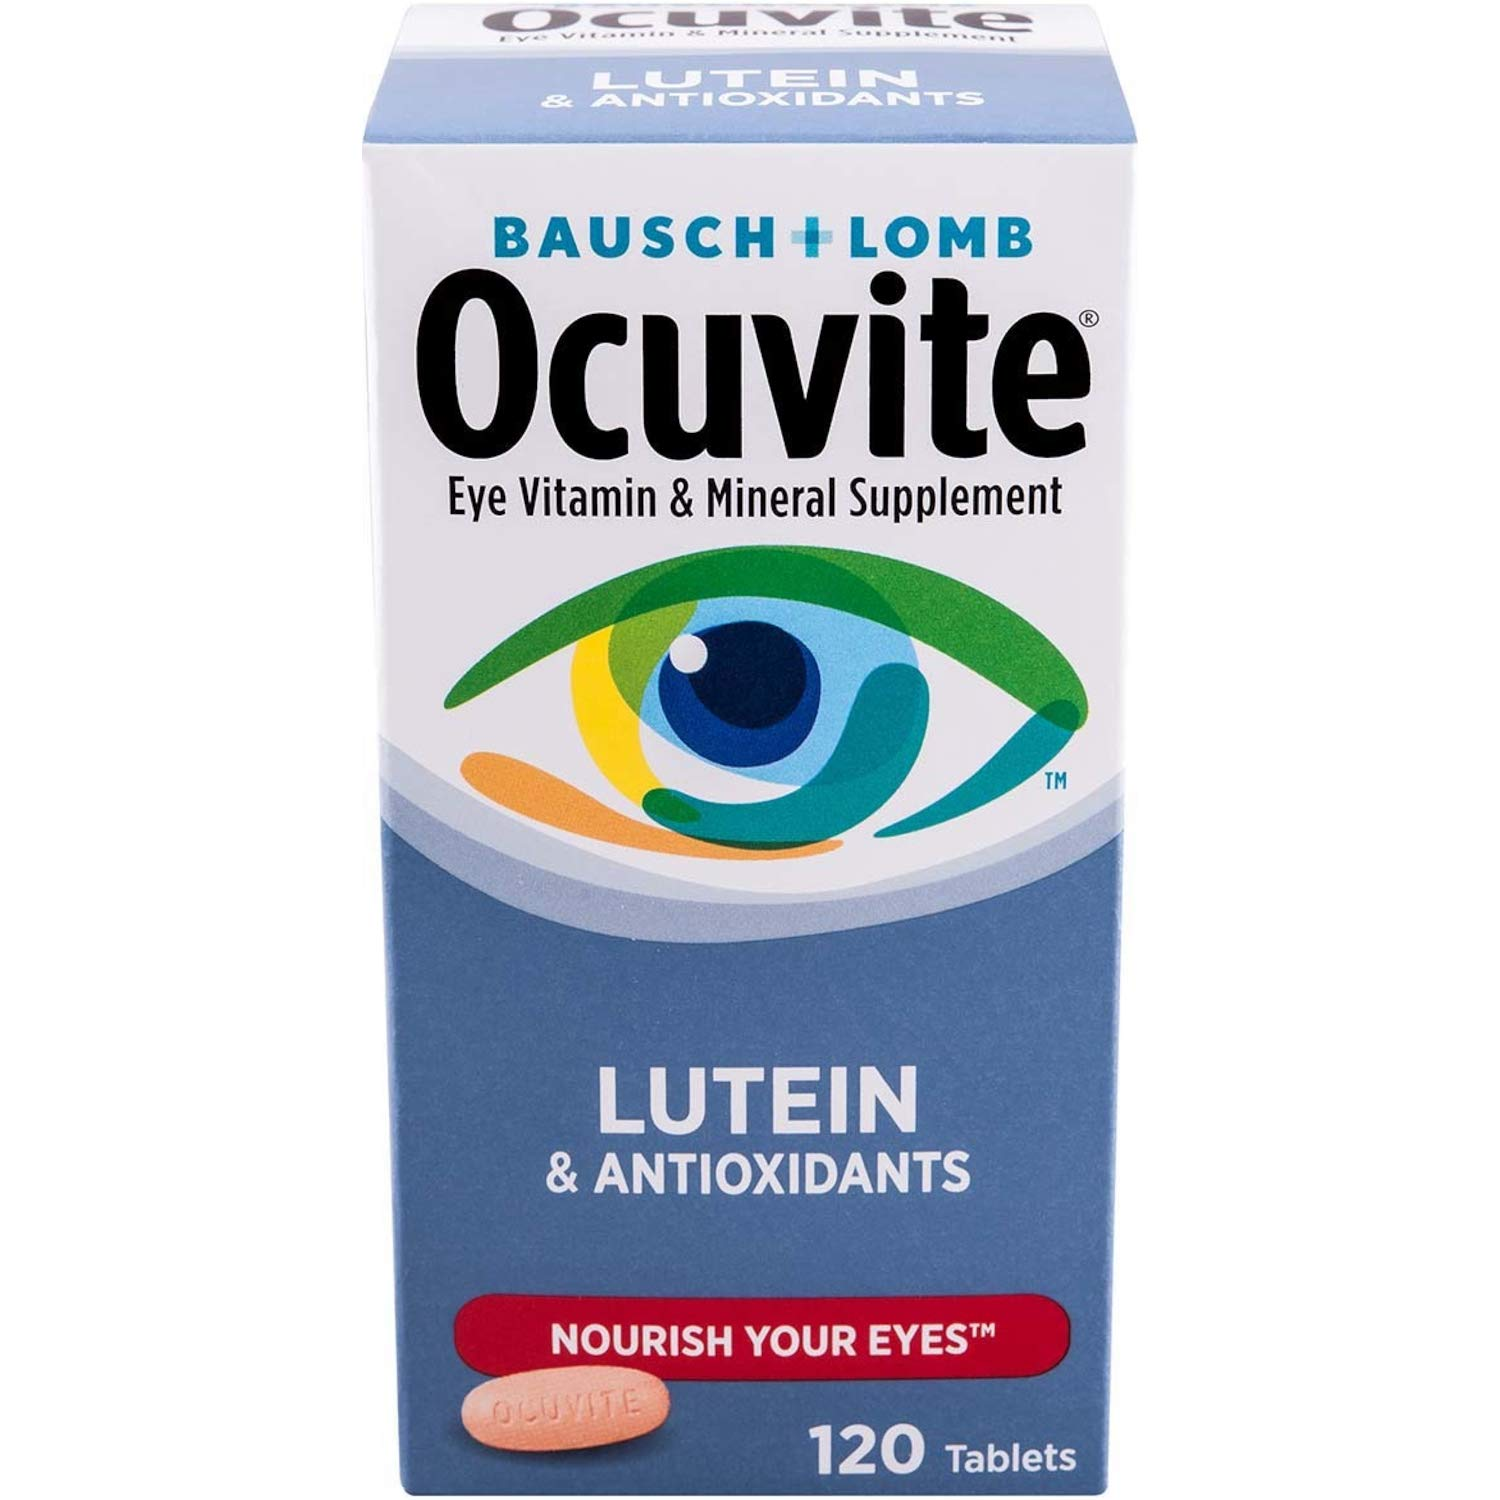 BAUSCH & LOMB OCUVITE with Lutein! 120 Tablets Eye Care by Bausch & Lomb